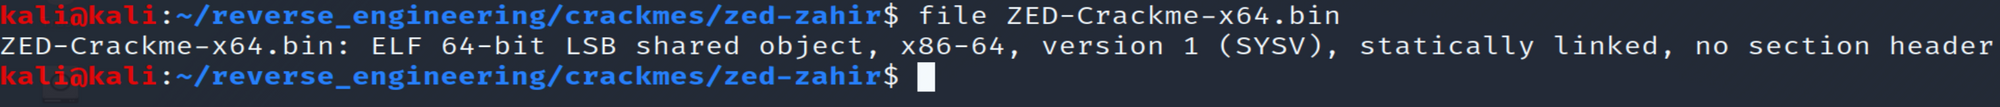 Output of file command on ZED-Crackme-x64.bin